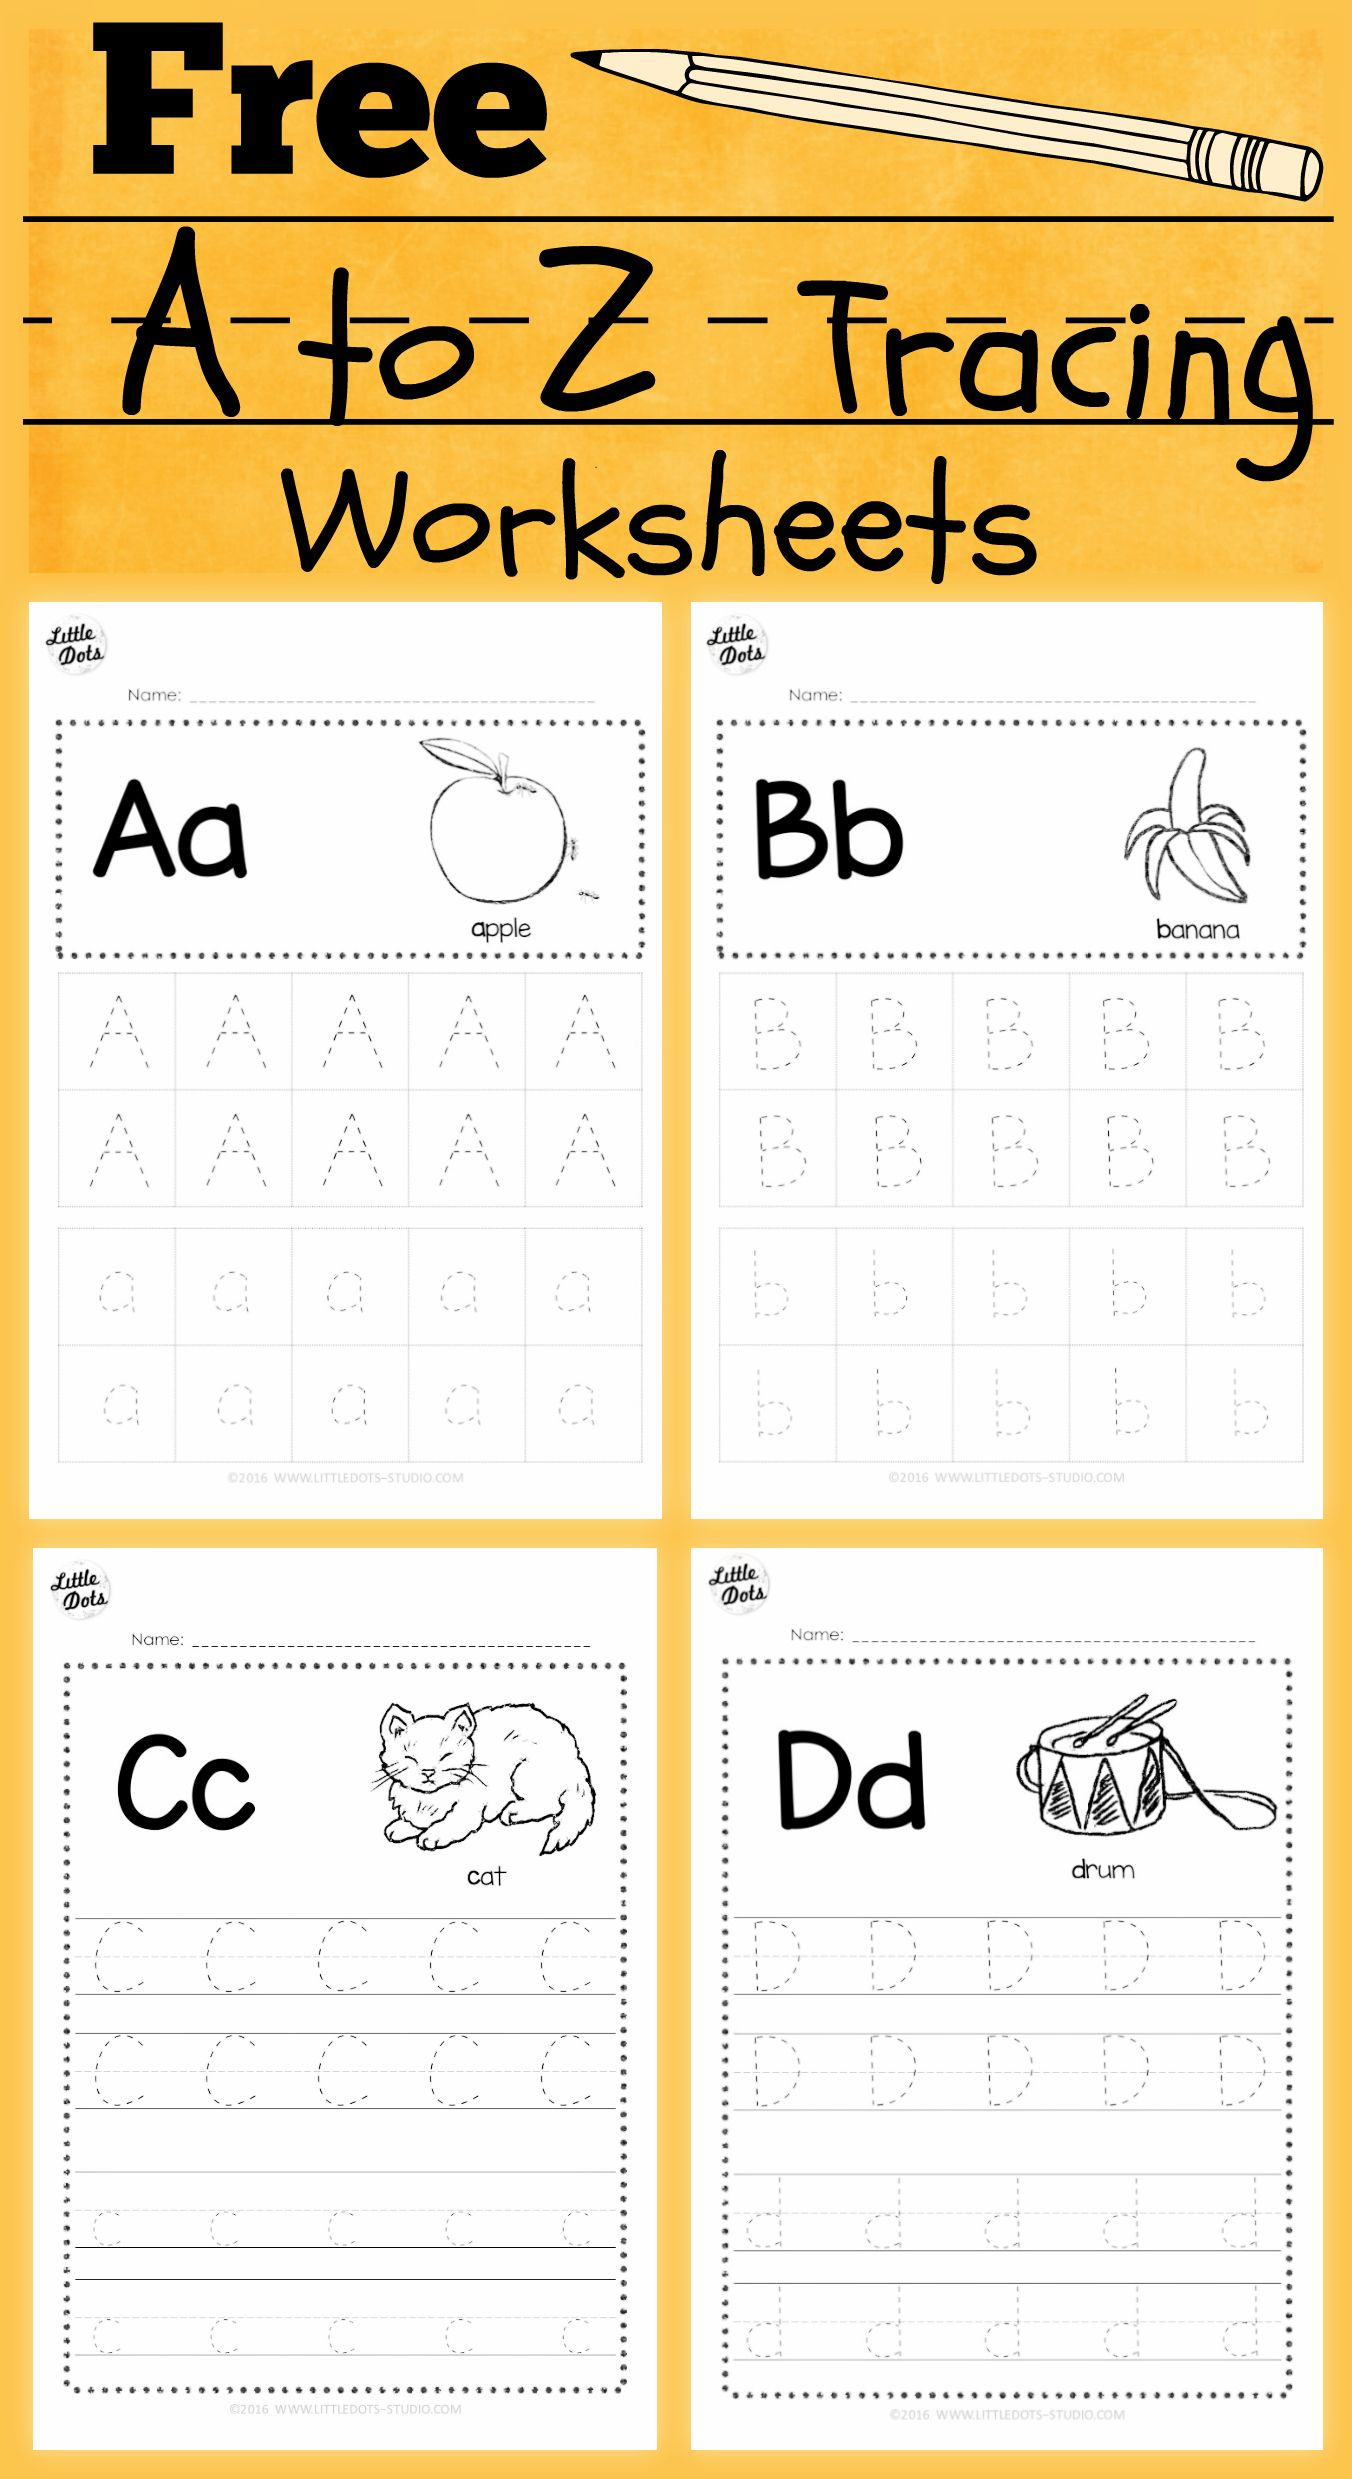 Download Free Alphabet Tracing Worksheets For Letter A To Z regarding Alphabet Worksheets To Download